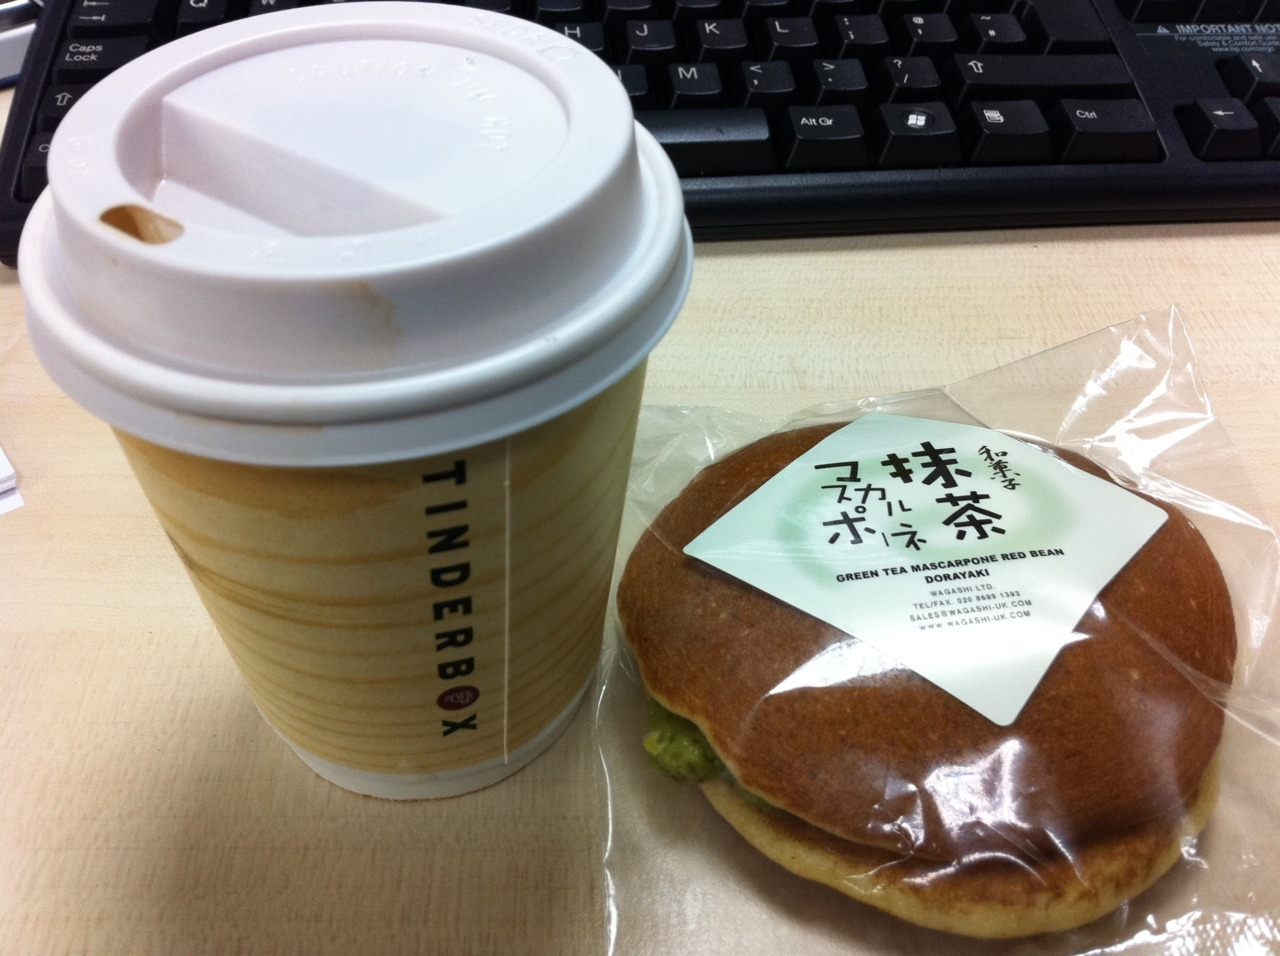 Afternoon Treats - flat white from Tinderbox (£2.15) and Green tea mascarpone and red bean dorayaki Japanese pancake (£1.50) Tinderbox's flat white trumps Taylor Street Barista's flat white (£2.40) both in terms of flavour and price. As a patriot, I've frequented Aussie cafe, Taylor Street Baristas for my occasional expresso fix. The velvety milk and strong coffee at Tinderbox has won me over and now I've found a suitable replacement. Tinderbox, 100 Middlesex Street, London E1 7LF Thanks to a friend's recommendation I today had lunch at Japanika, a tiny Japanese take away joint on the fringes of Spitafields Market and Brick Lane. The food available is far more superior than the chains Wasabi and Itsu and at reasonable prices. A house special sushi set costs only £6.90 and the dorayaki Japanese pancake is a dirt cheap £1.50. The chicken katsu curry is apparently pretty good as well. Japanika, 10 Hanbury Street, London E1 6QRhttp://www.japanika.co.uk/index.html